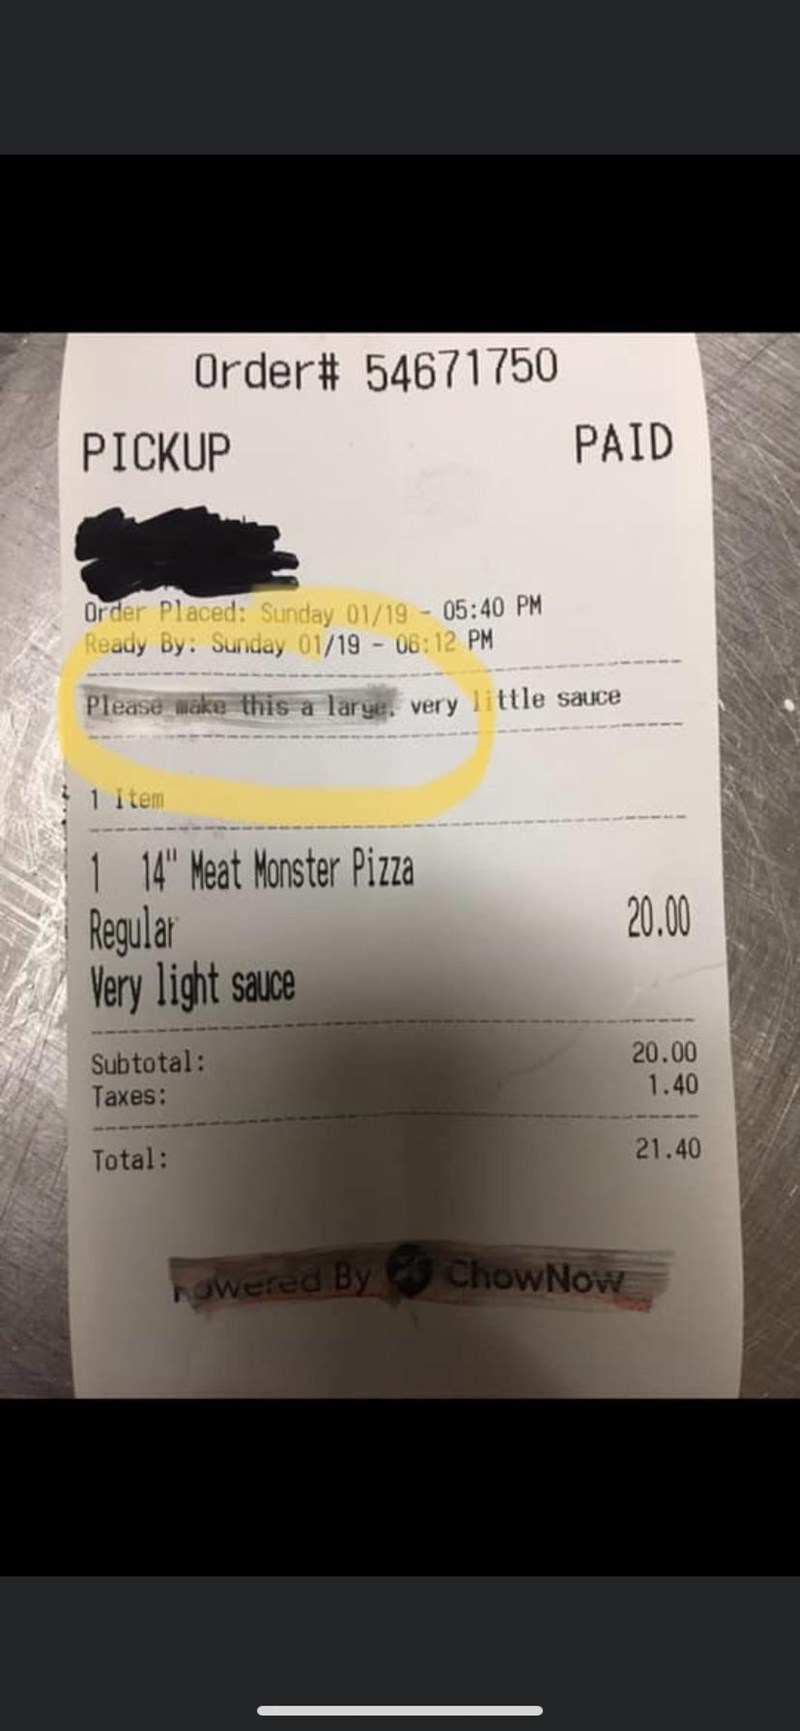 Text - Order# 54671750 PAID PICKUP Order Placed: Sunday 01/19 05:40 PM Ready By: Sunday 01/19 06:12 PM Please make this a larye, very little sauce 1 item 1 14 Meat Monster Pizza Regular Very light sauce 20.00 20.00 1.40 Subtotal: Taxes: 21.40 Total: ChowNow howered By